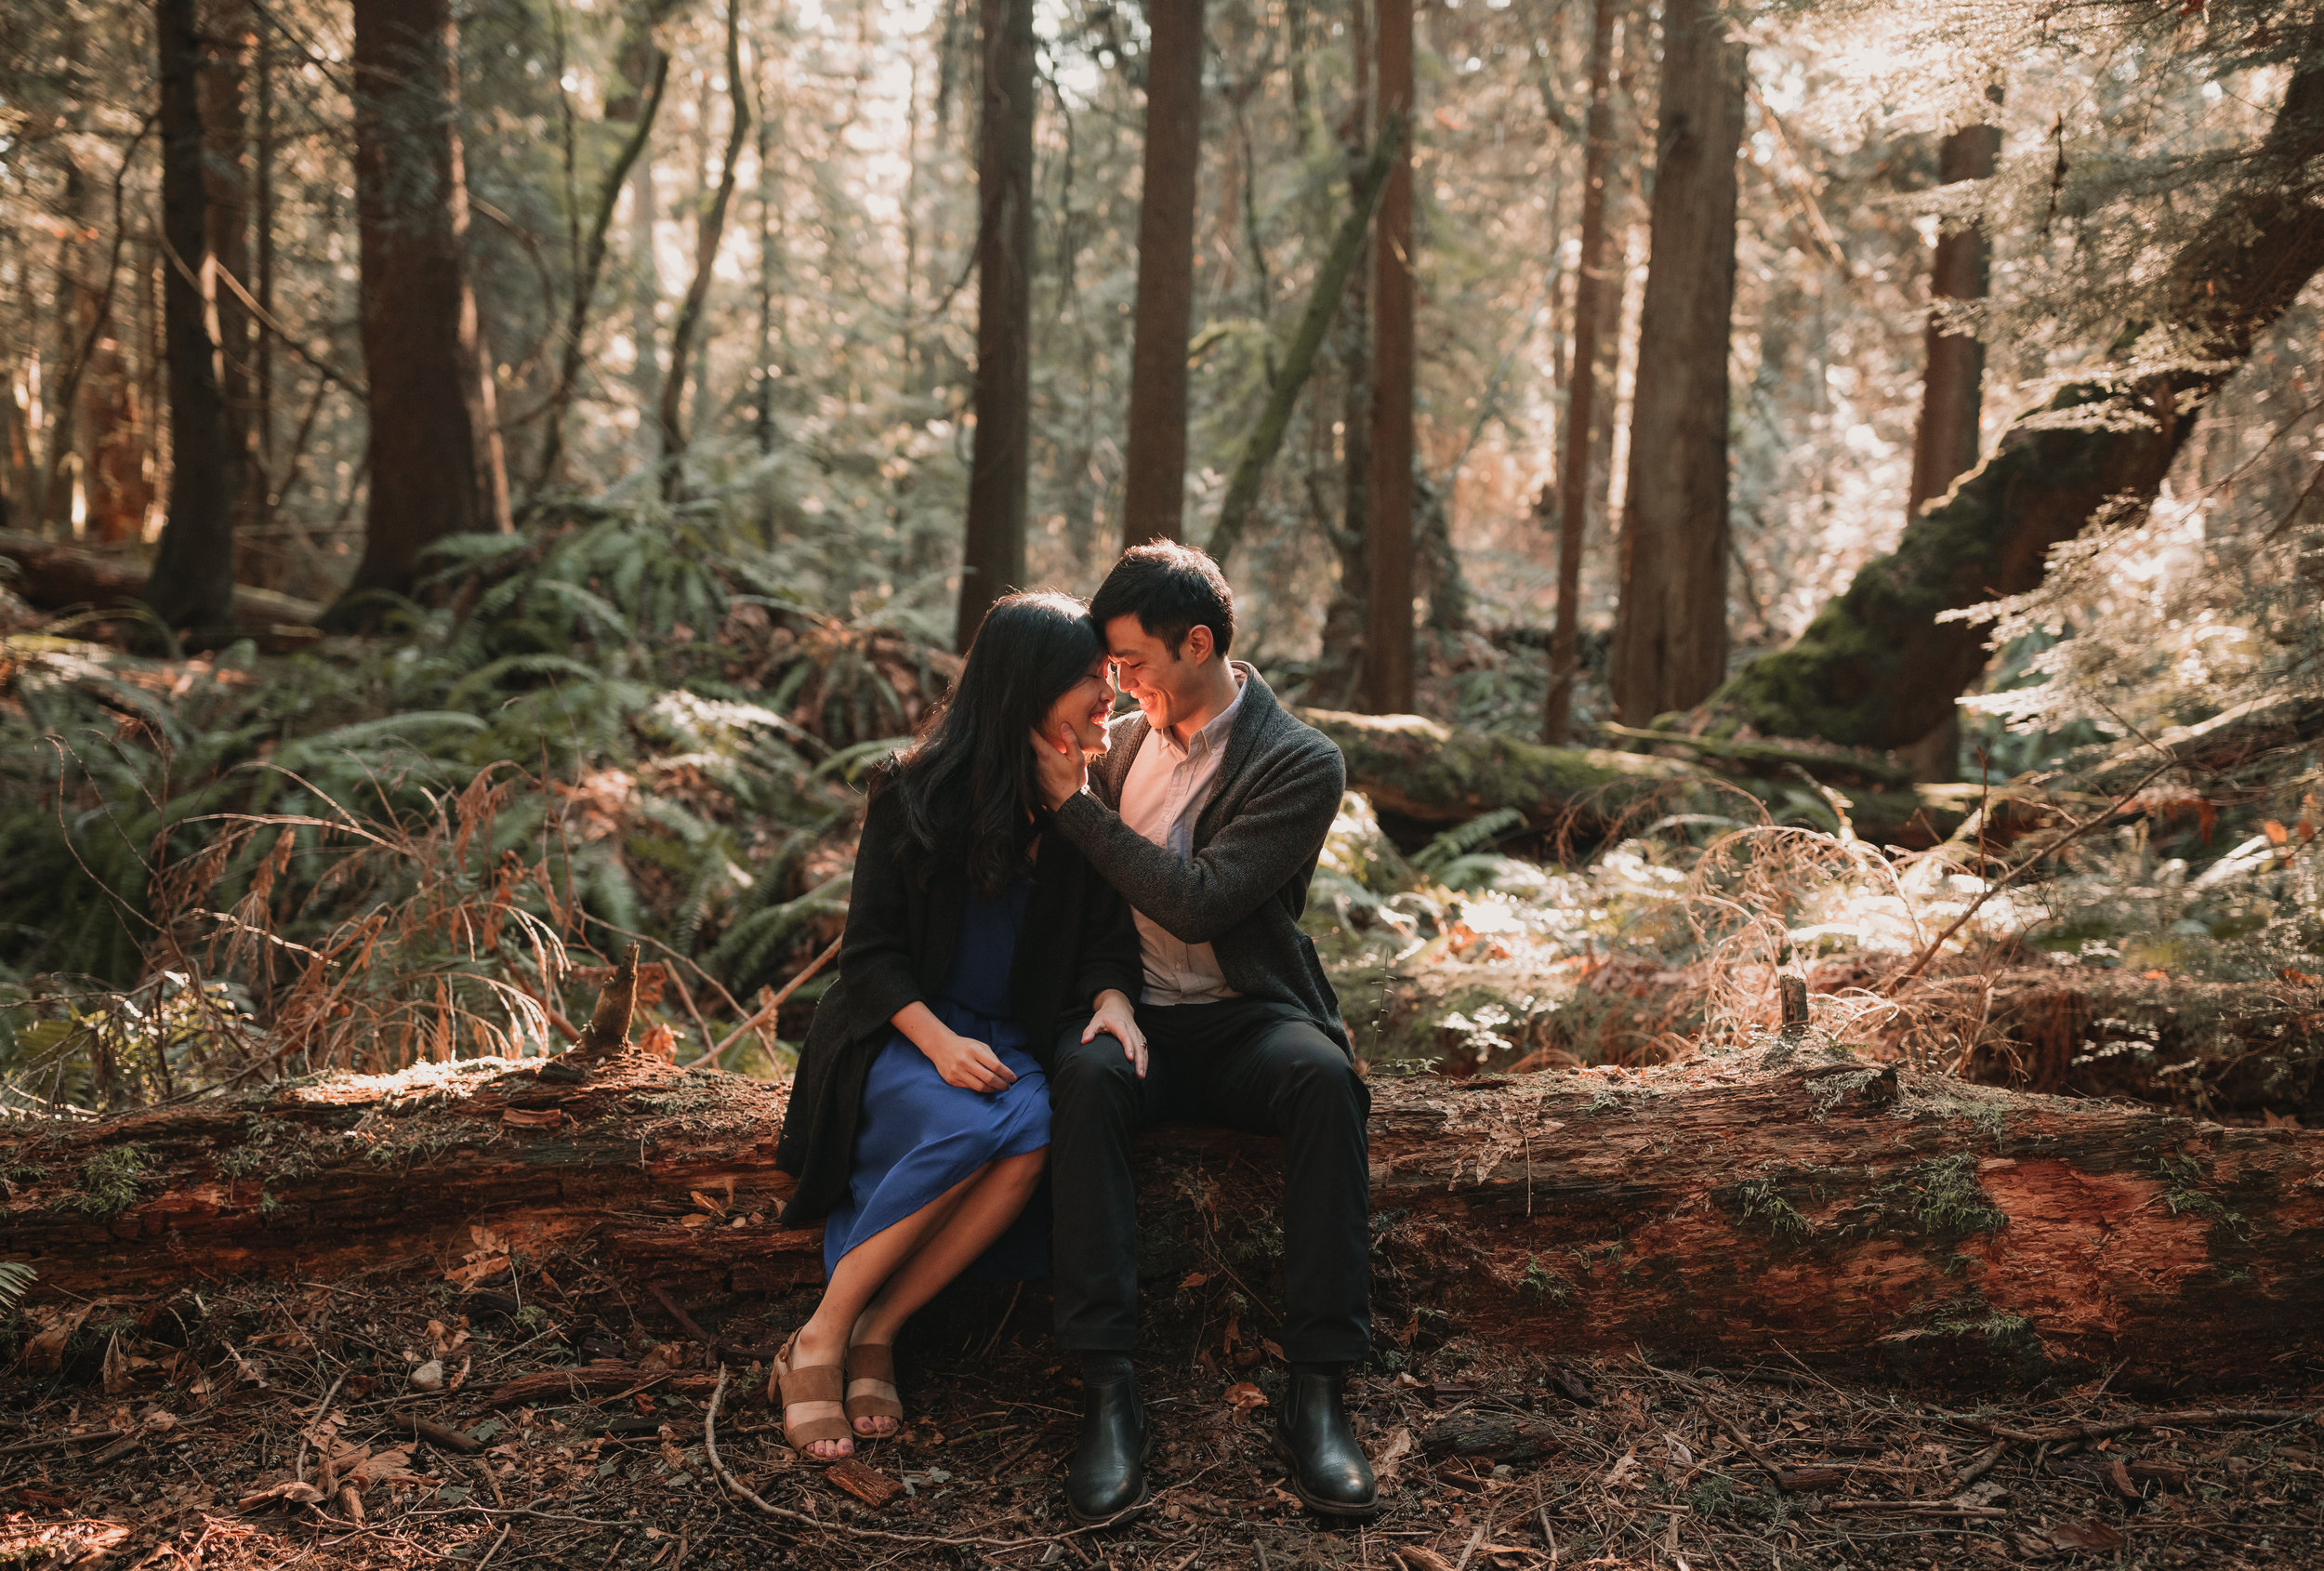 Sunshine Coast Forest Engagement Photos — Jennifer Picard Photography — Vancouver Wedding Photographer & Videographer — 402.JPG